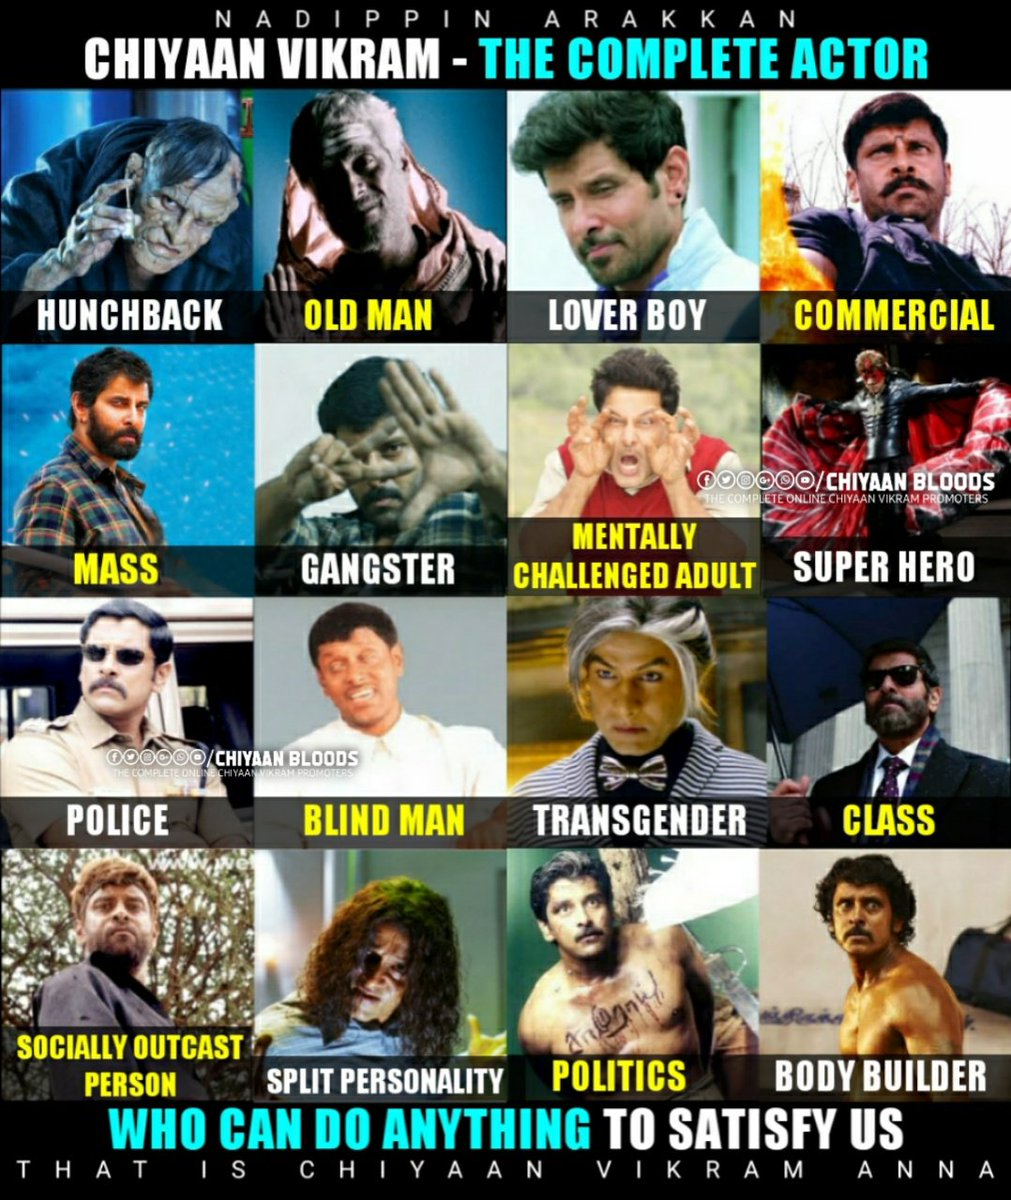 @Vicki_Master Don't compare chiyaan with any actor bro #ChiyaanVikram legend of Indian Cinema incomparable actor!!! #cobra